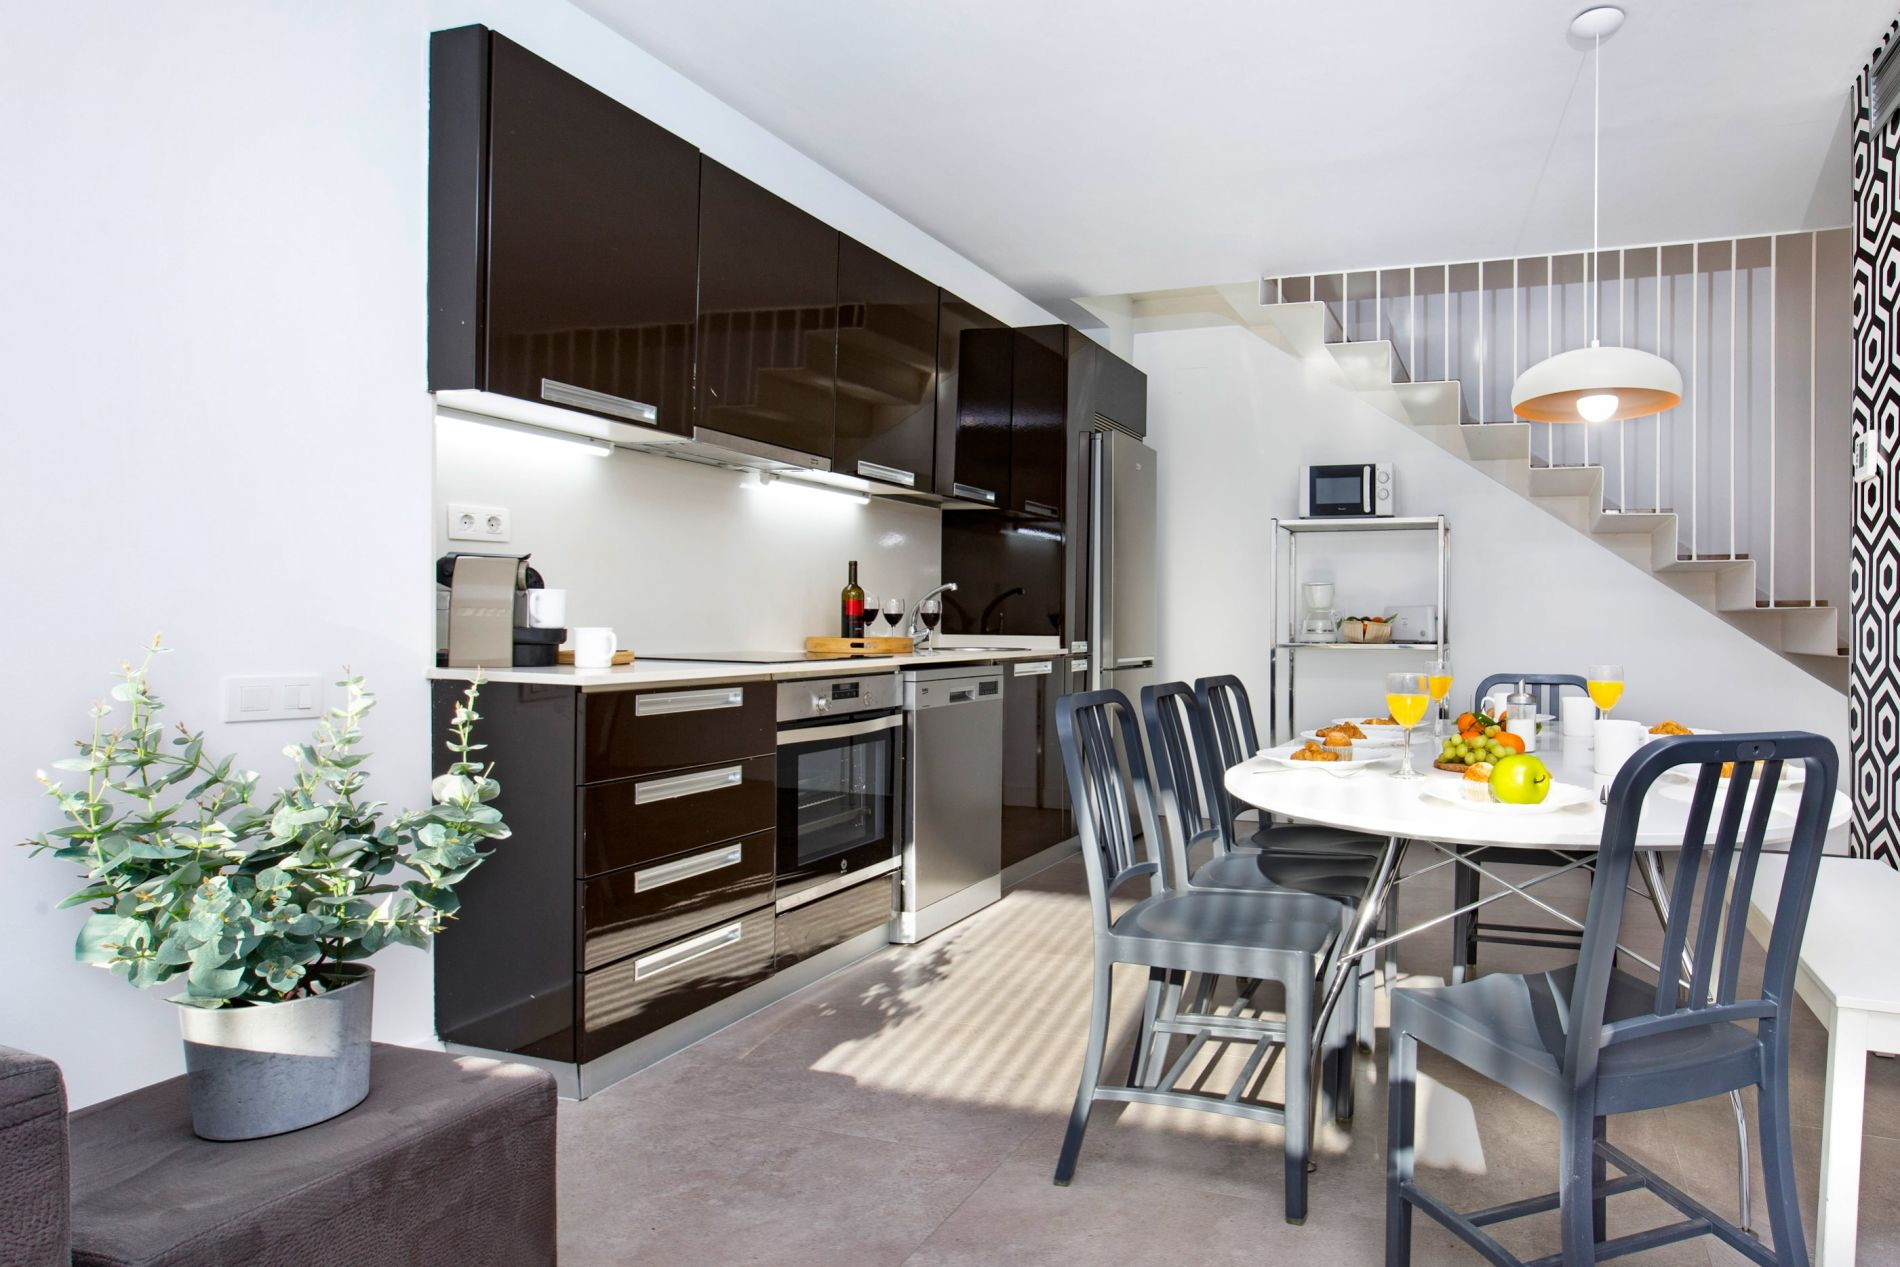 Rooftop serviced apartment in Barcelona that allows pets